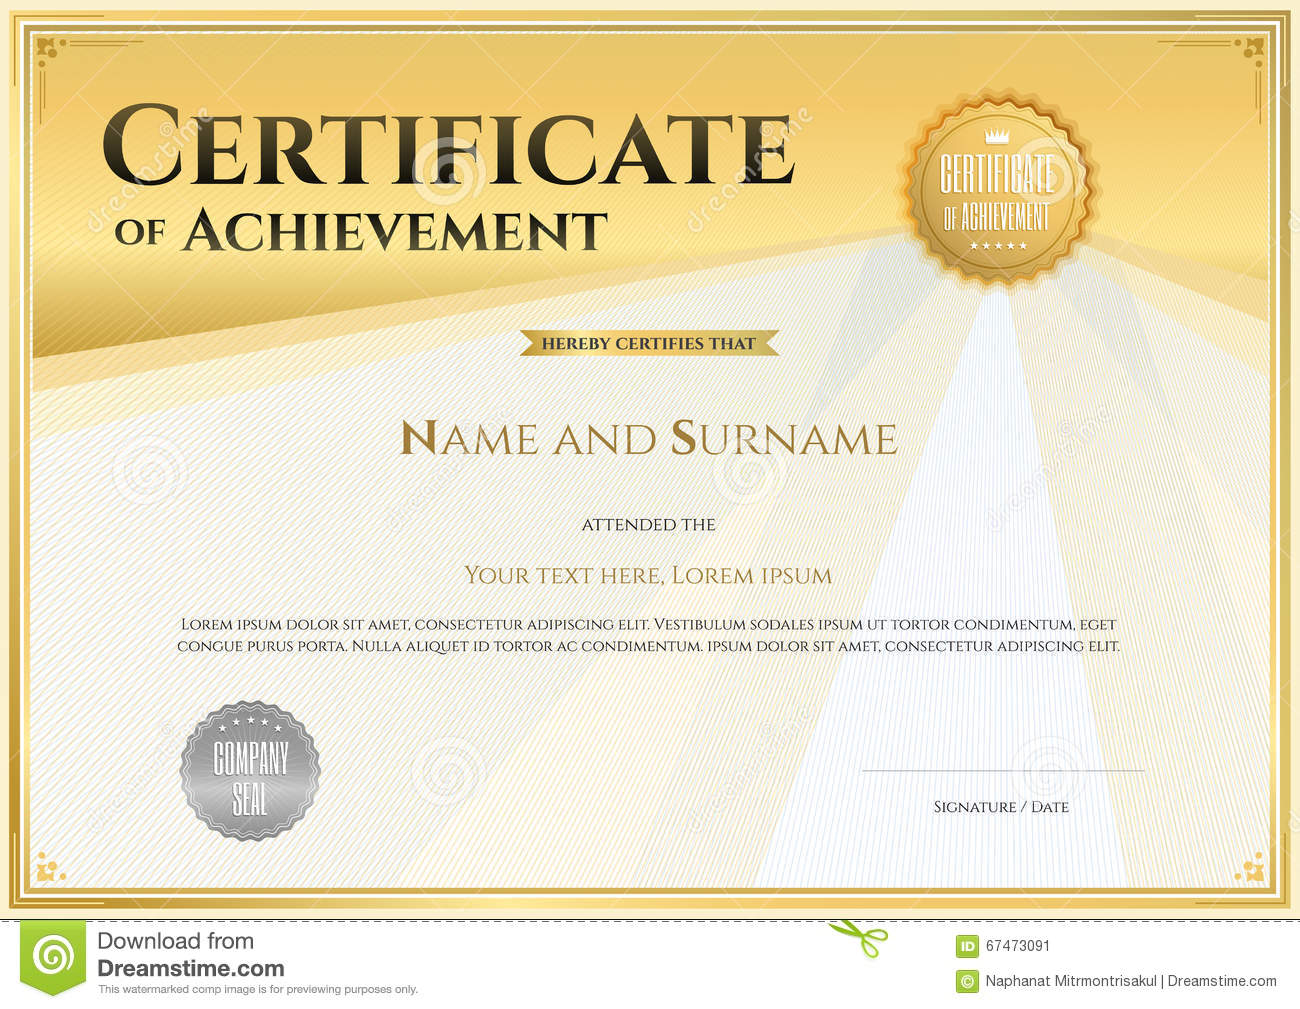 Certificate template in vector for achievement graduation comple certificate template in vector for achievement graduation comple xflitez Gallery